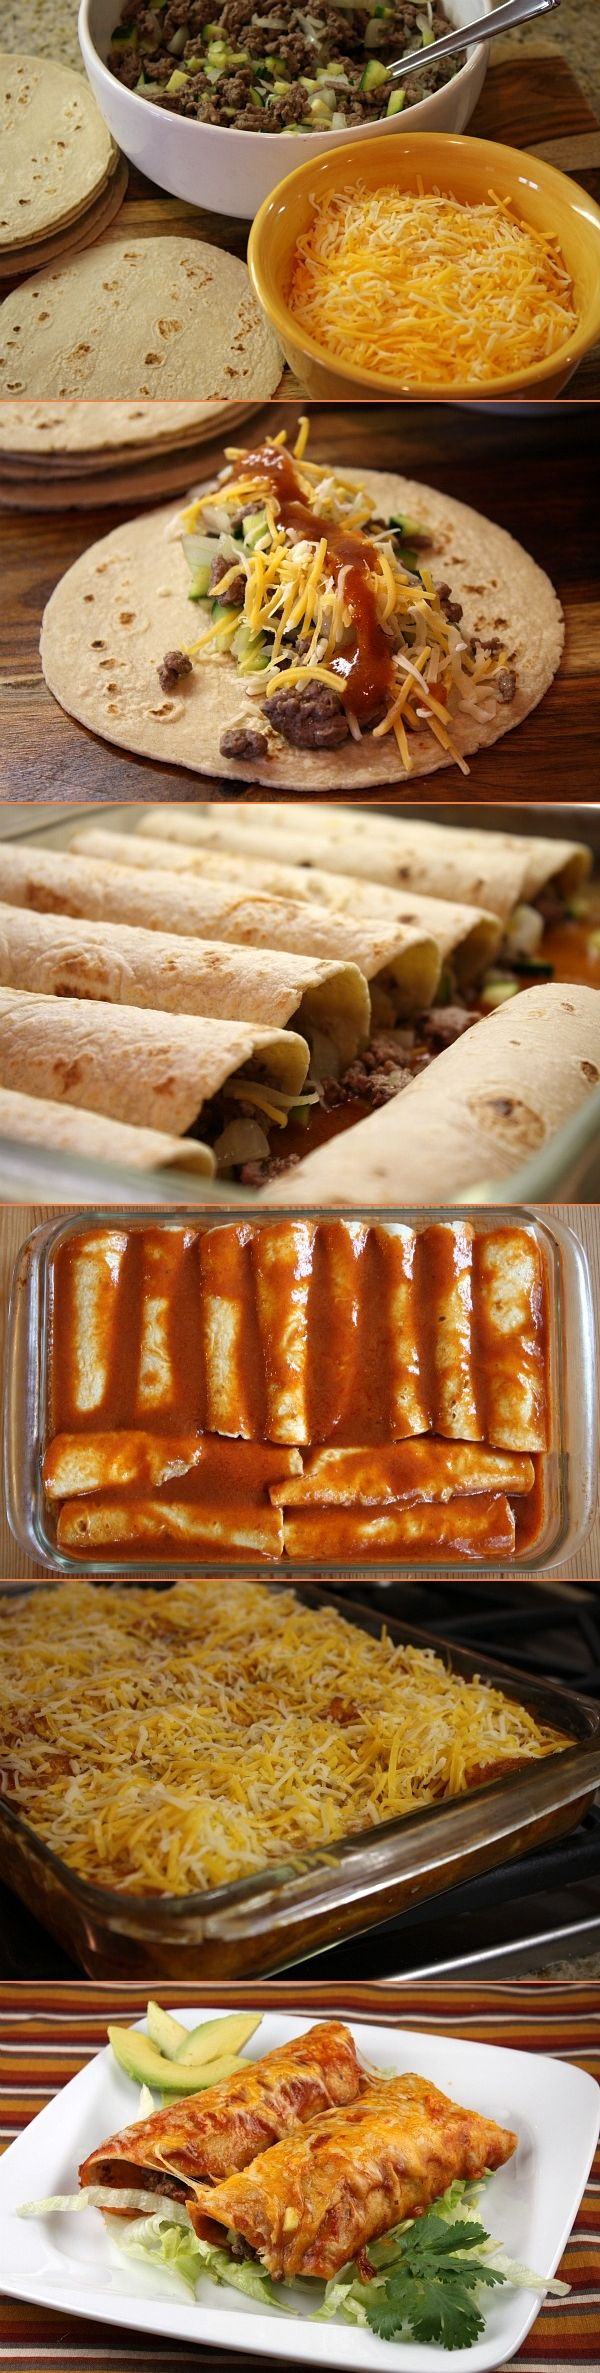 Easy Beef and Cheese Enchiladas #recipe (with a sneaky addition of zucchini in there too). Great, family-friendly dinner idea.